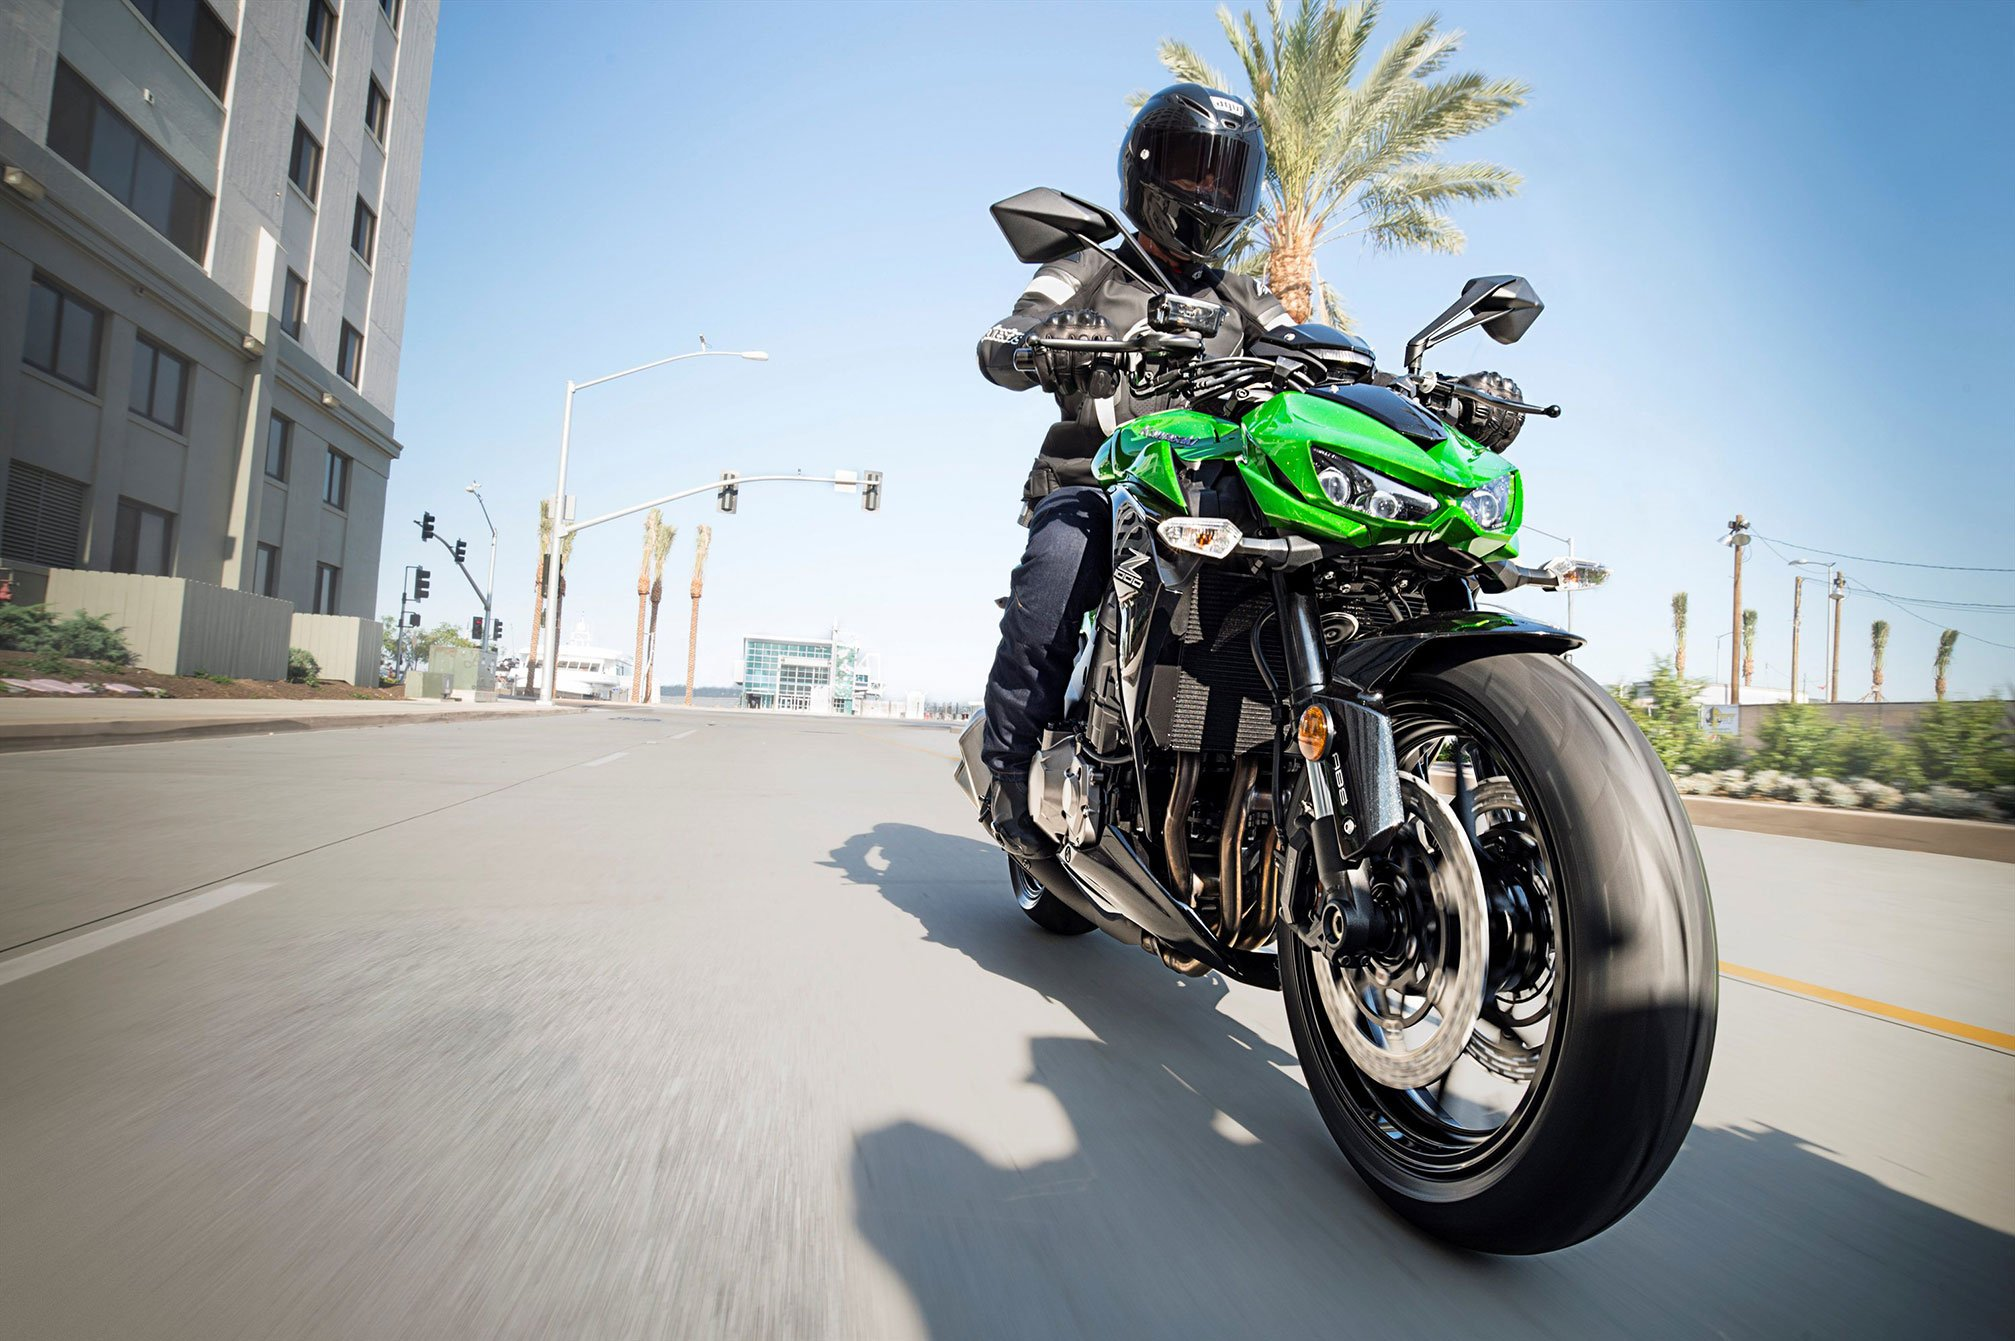 2015 Kawasaki Z1000 ABS Wallpaper